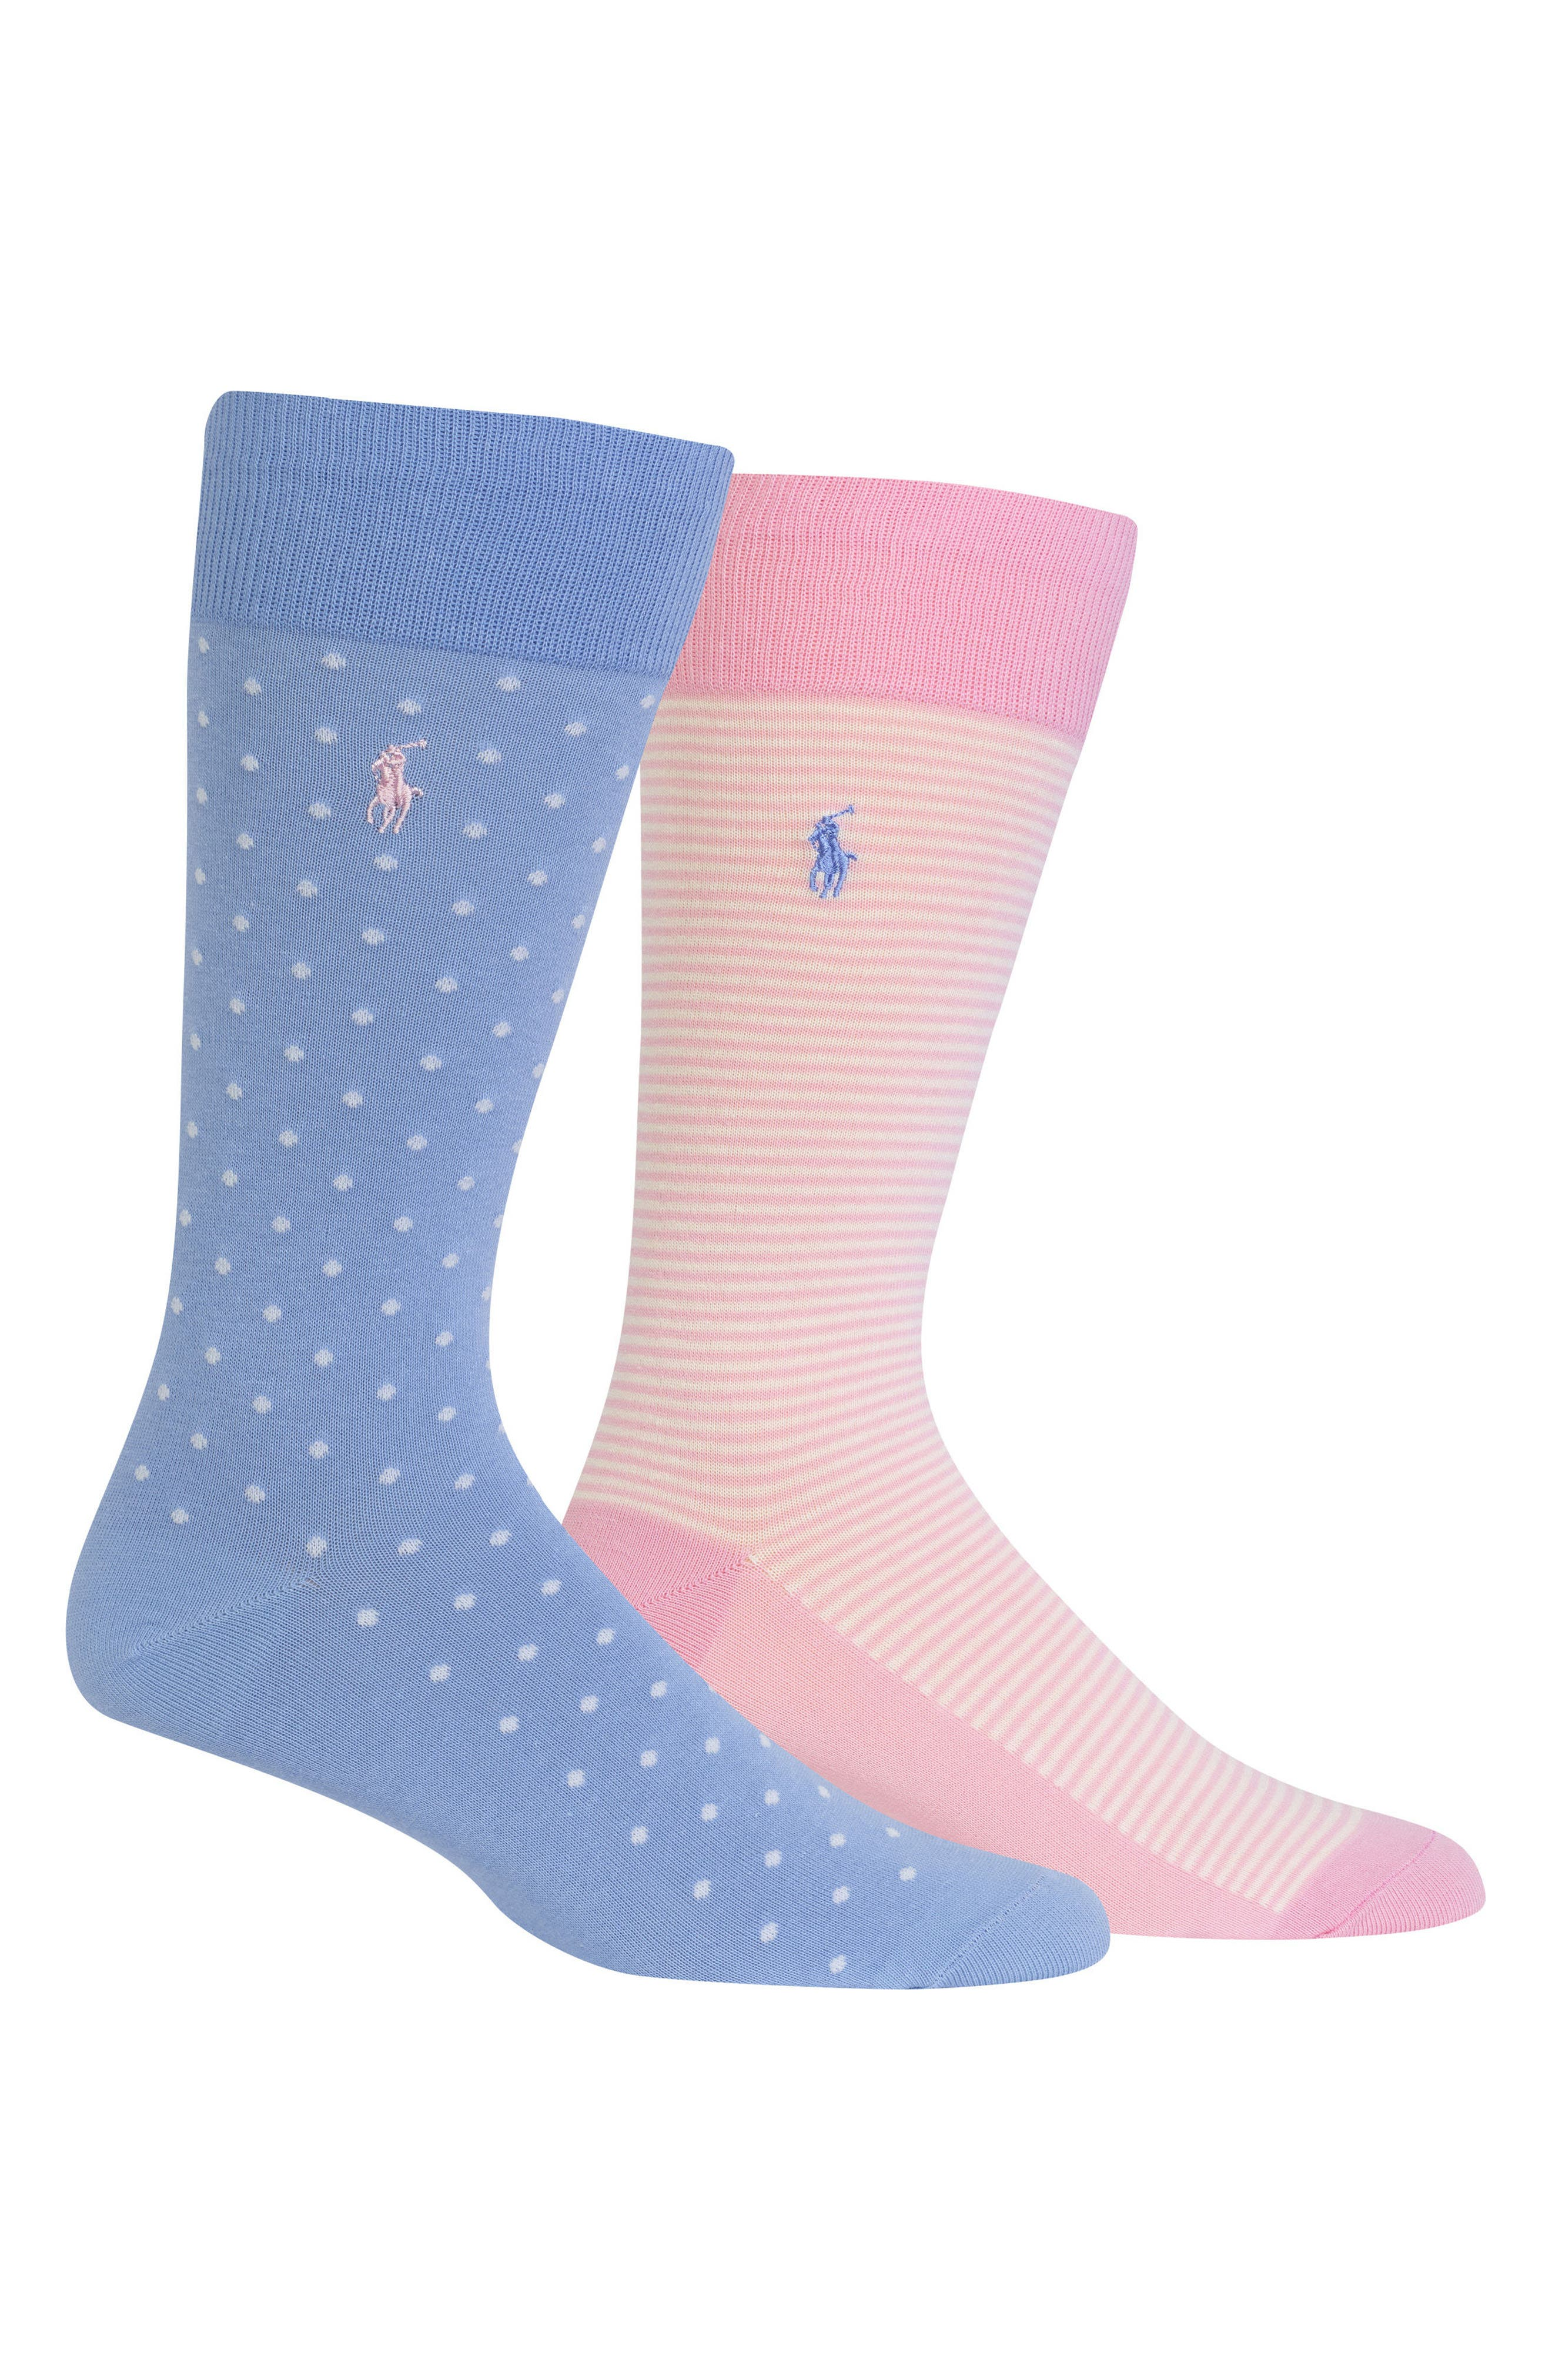 2-Pack Socks,                             Main thumbnail 1, color,                             468